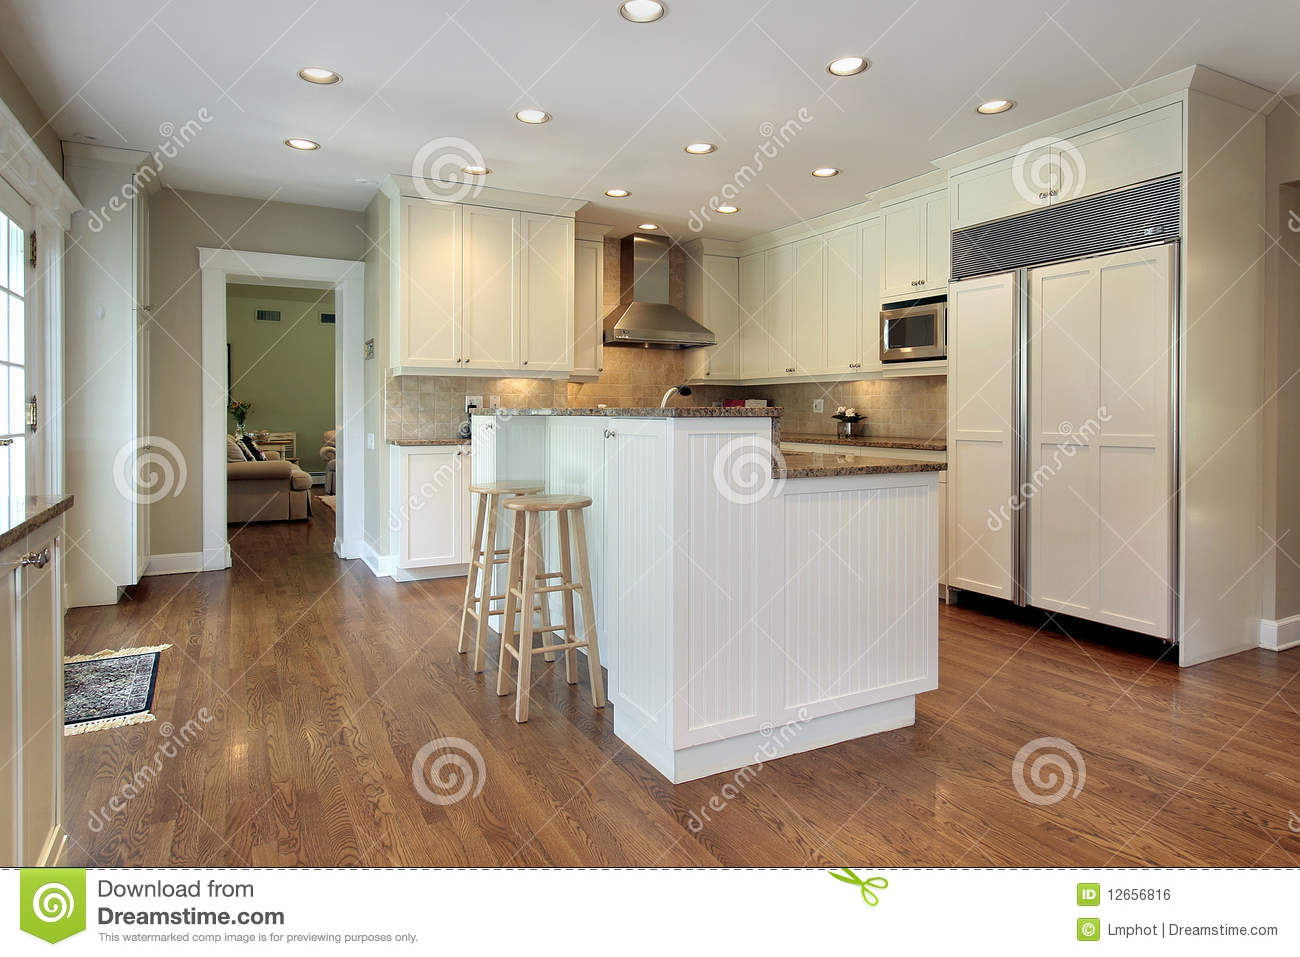 two tier kitchen island aid blender parts with tiered royalty free stock image